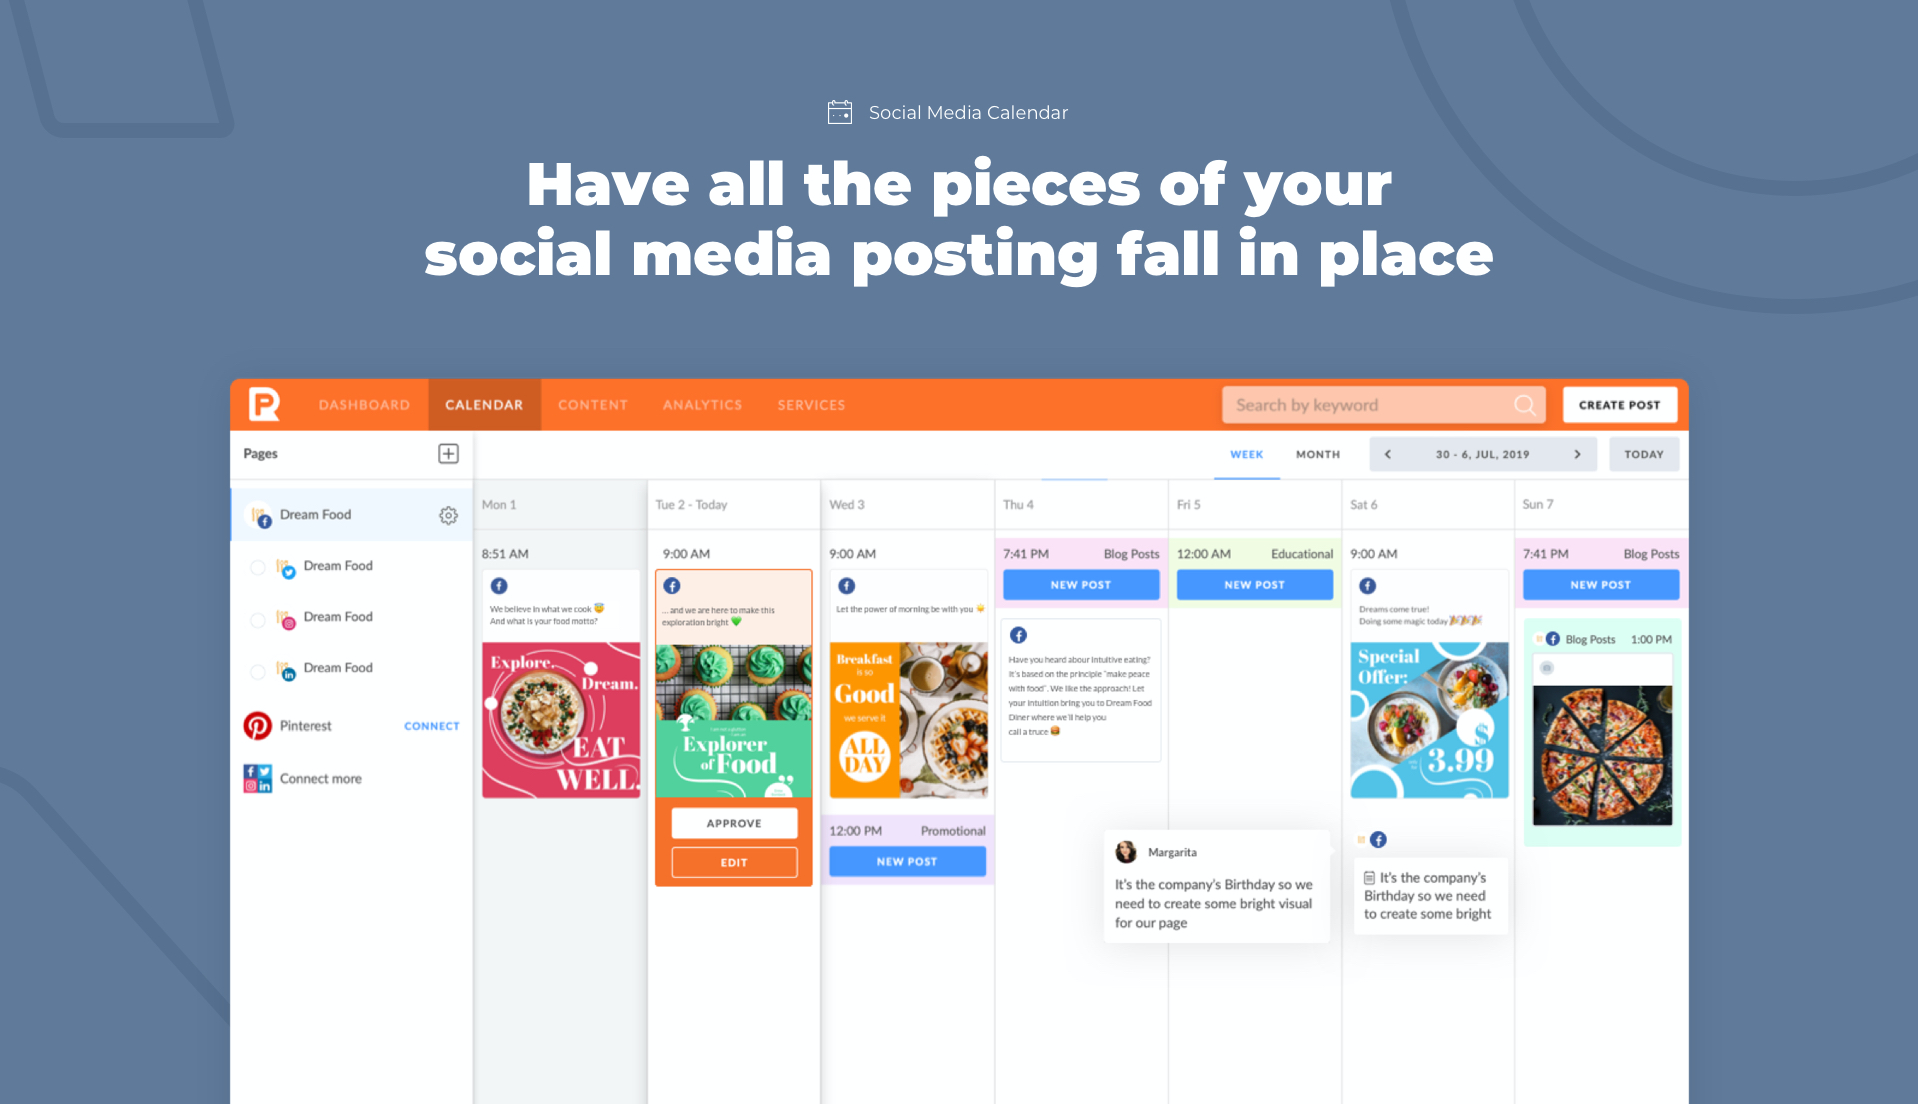 Have all the pieces of your social media posting fall in place